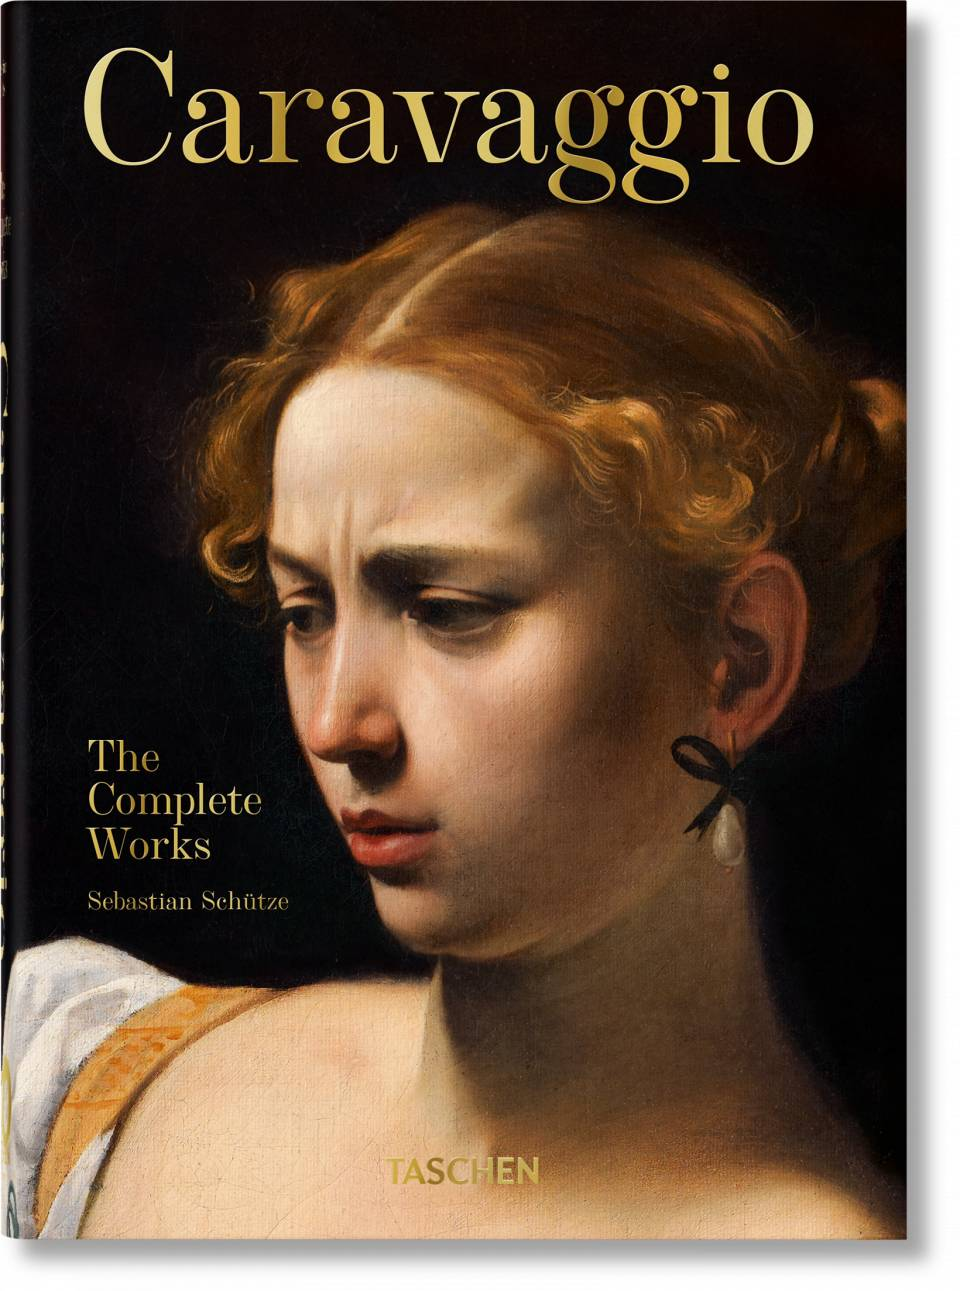 Caravaggio. The Complete Works. 40th Ed. - image 1